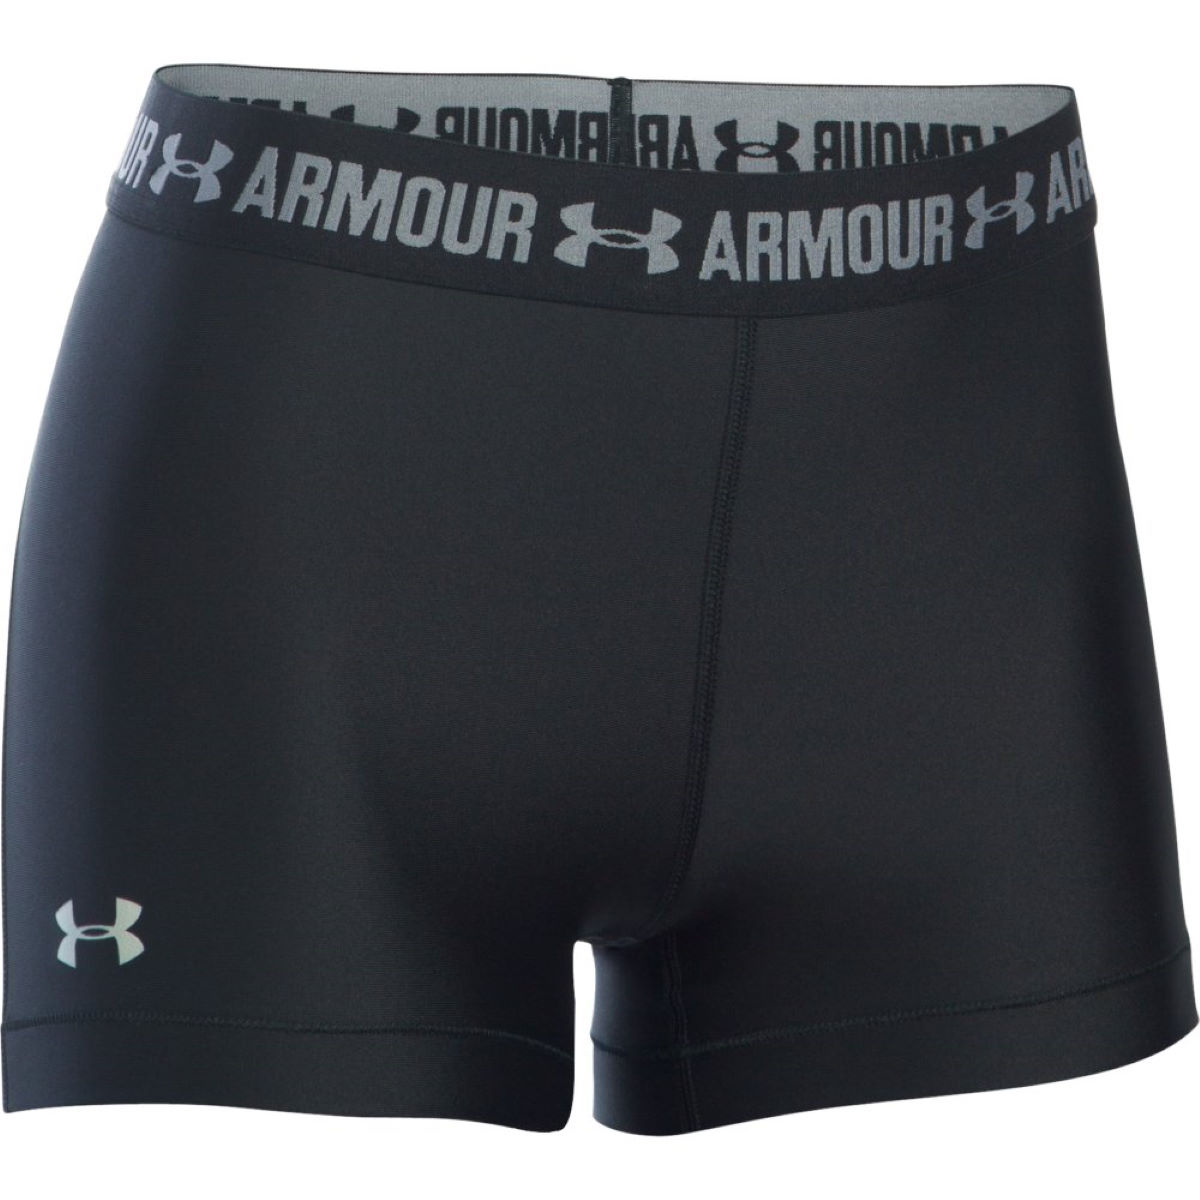 Boxer Femme Under Armour HG Armour Gym - XL Noir Shorts de running